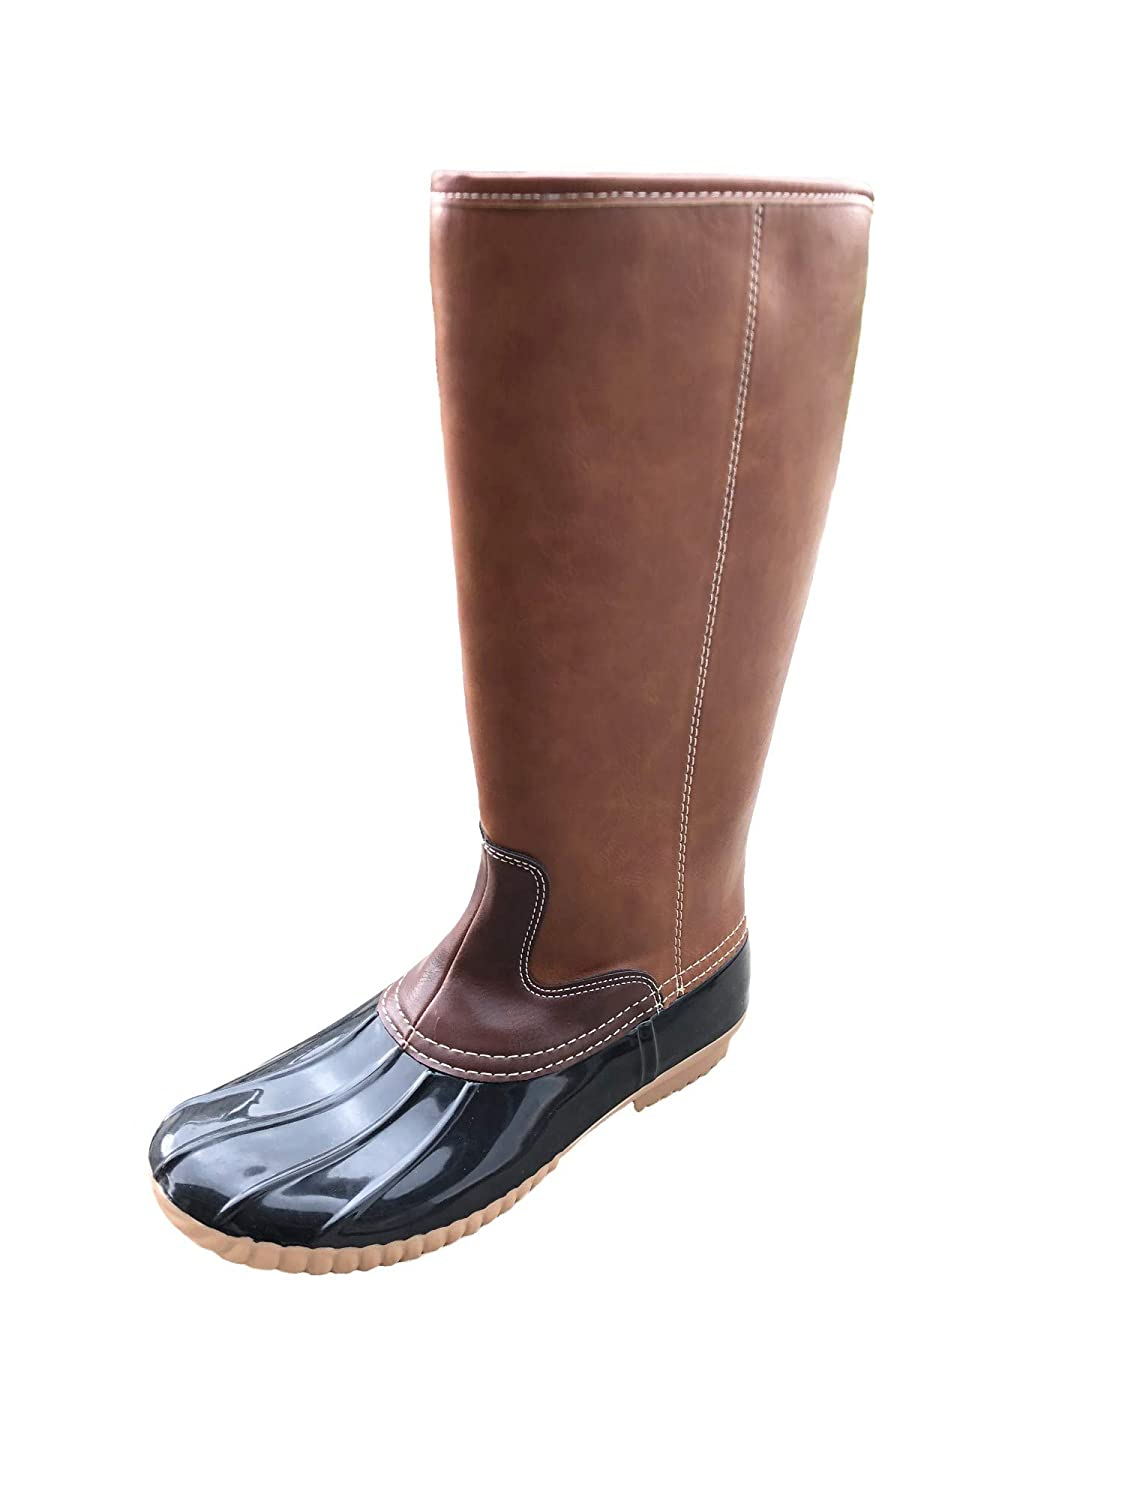 7b2226a21dc7c MONOBLANKS Fashion Women's Leather Tall Duck Boots, Plaid/Cotton Lined  Zipper Rain Snow Duck Boots Can be Monogrammed